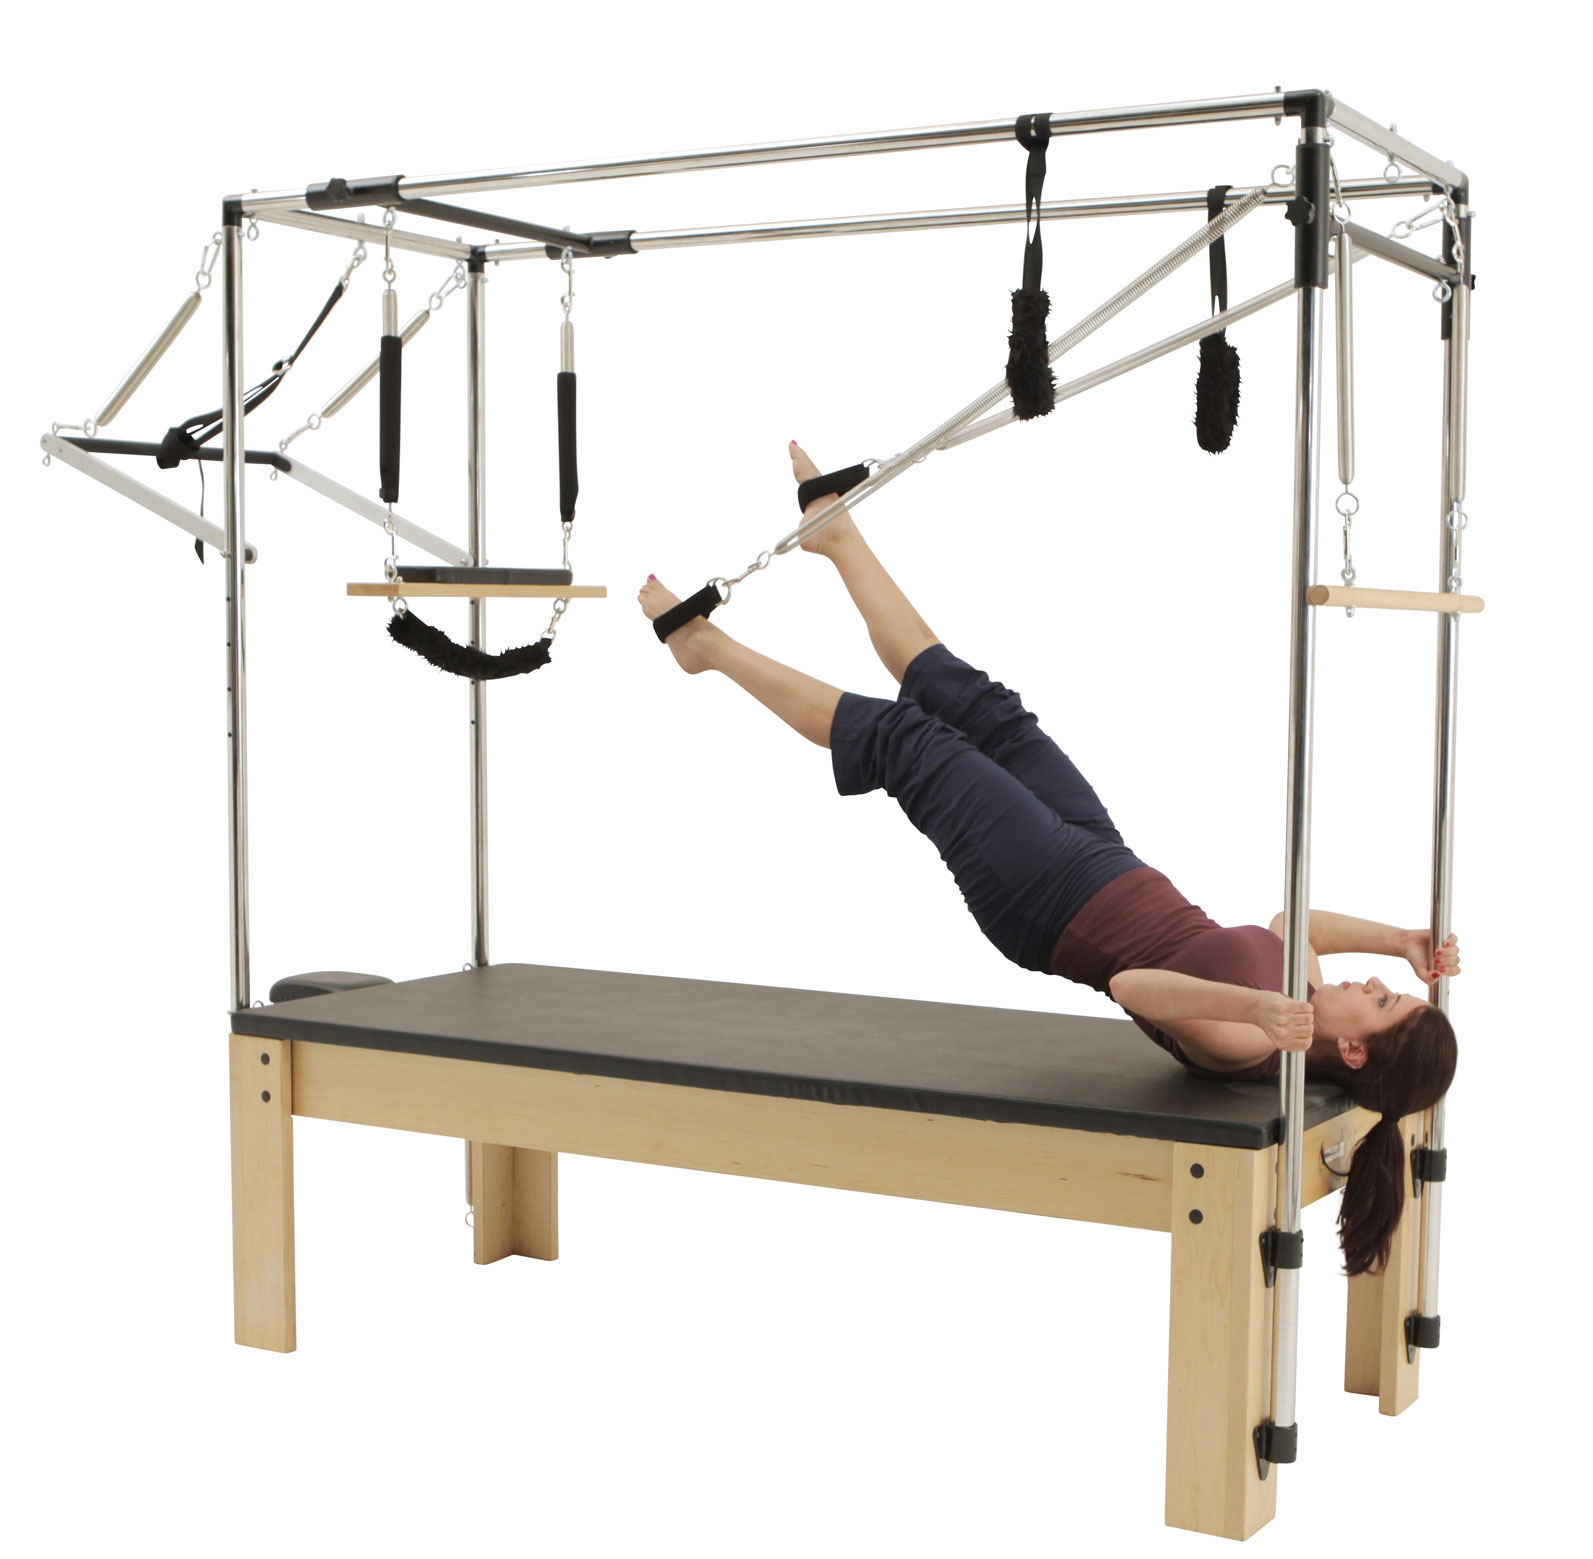 The gallery for --> Pilates Cadillac Reformer